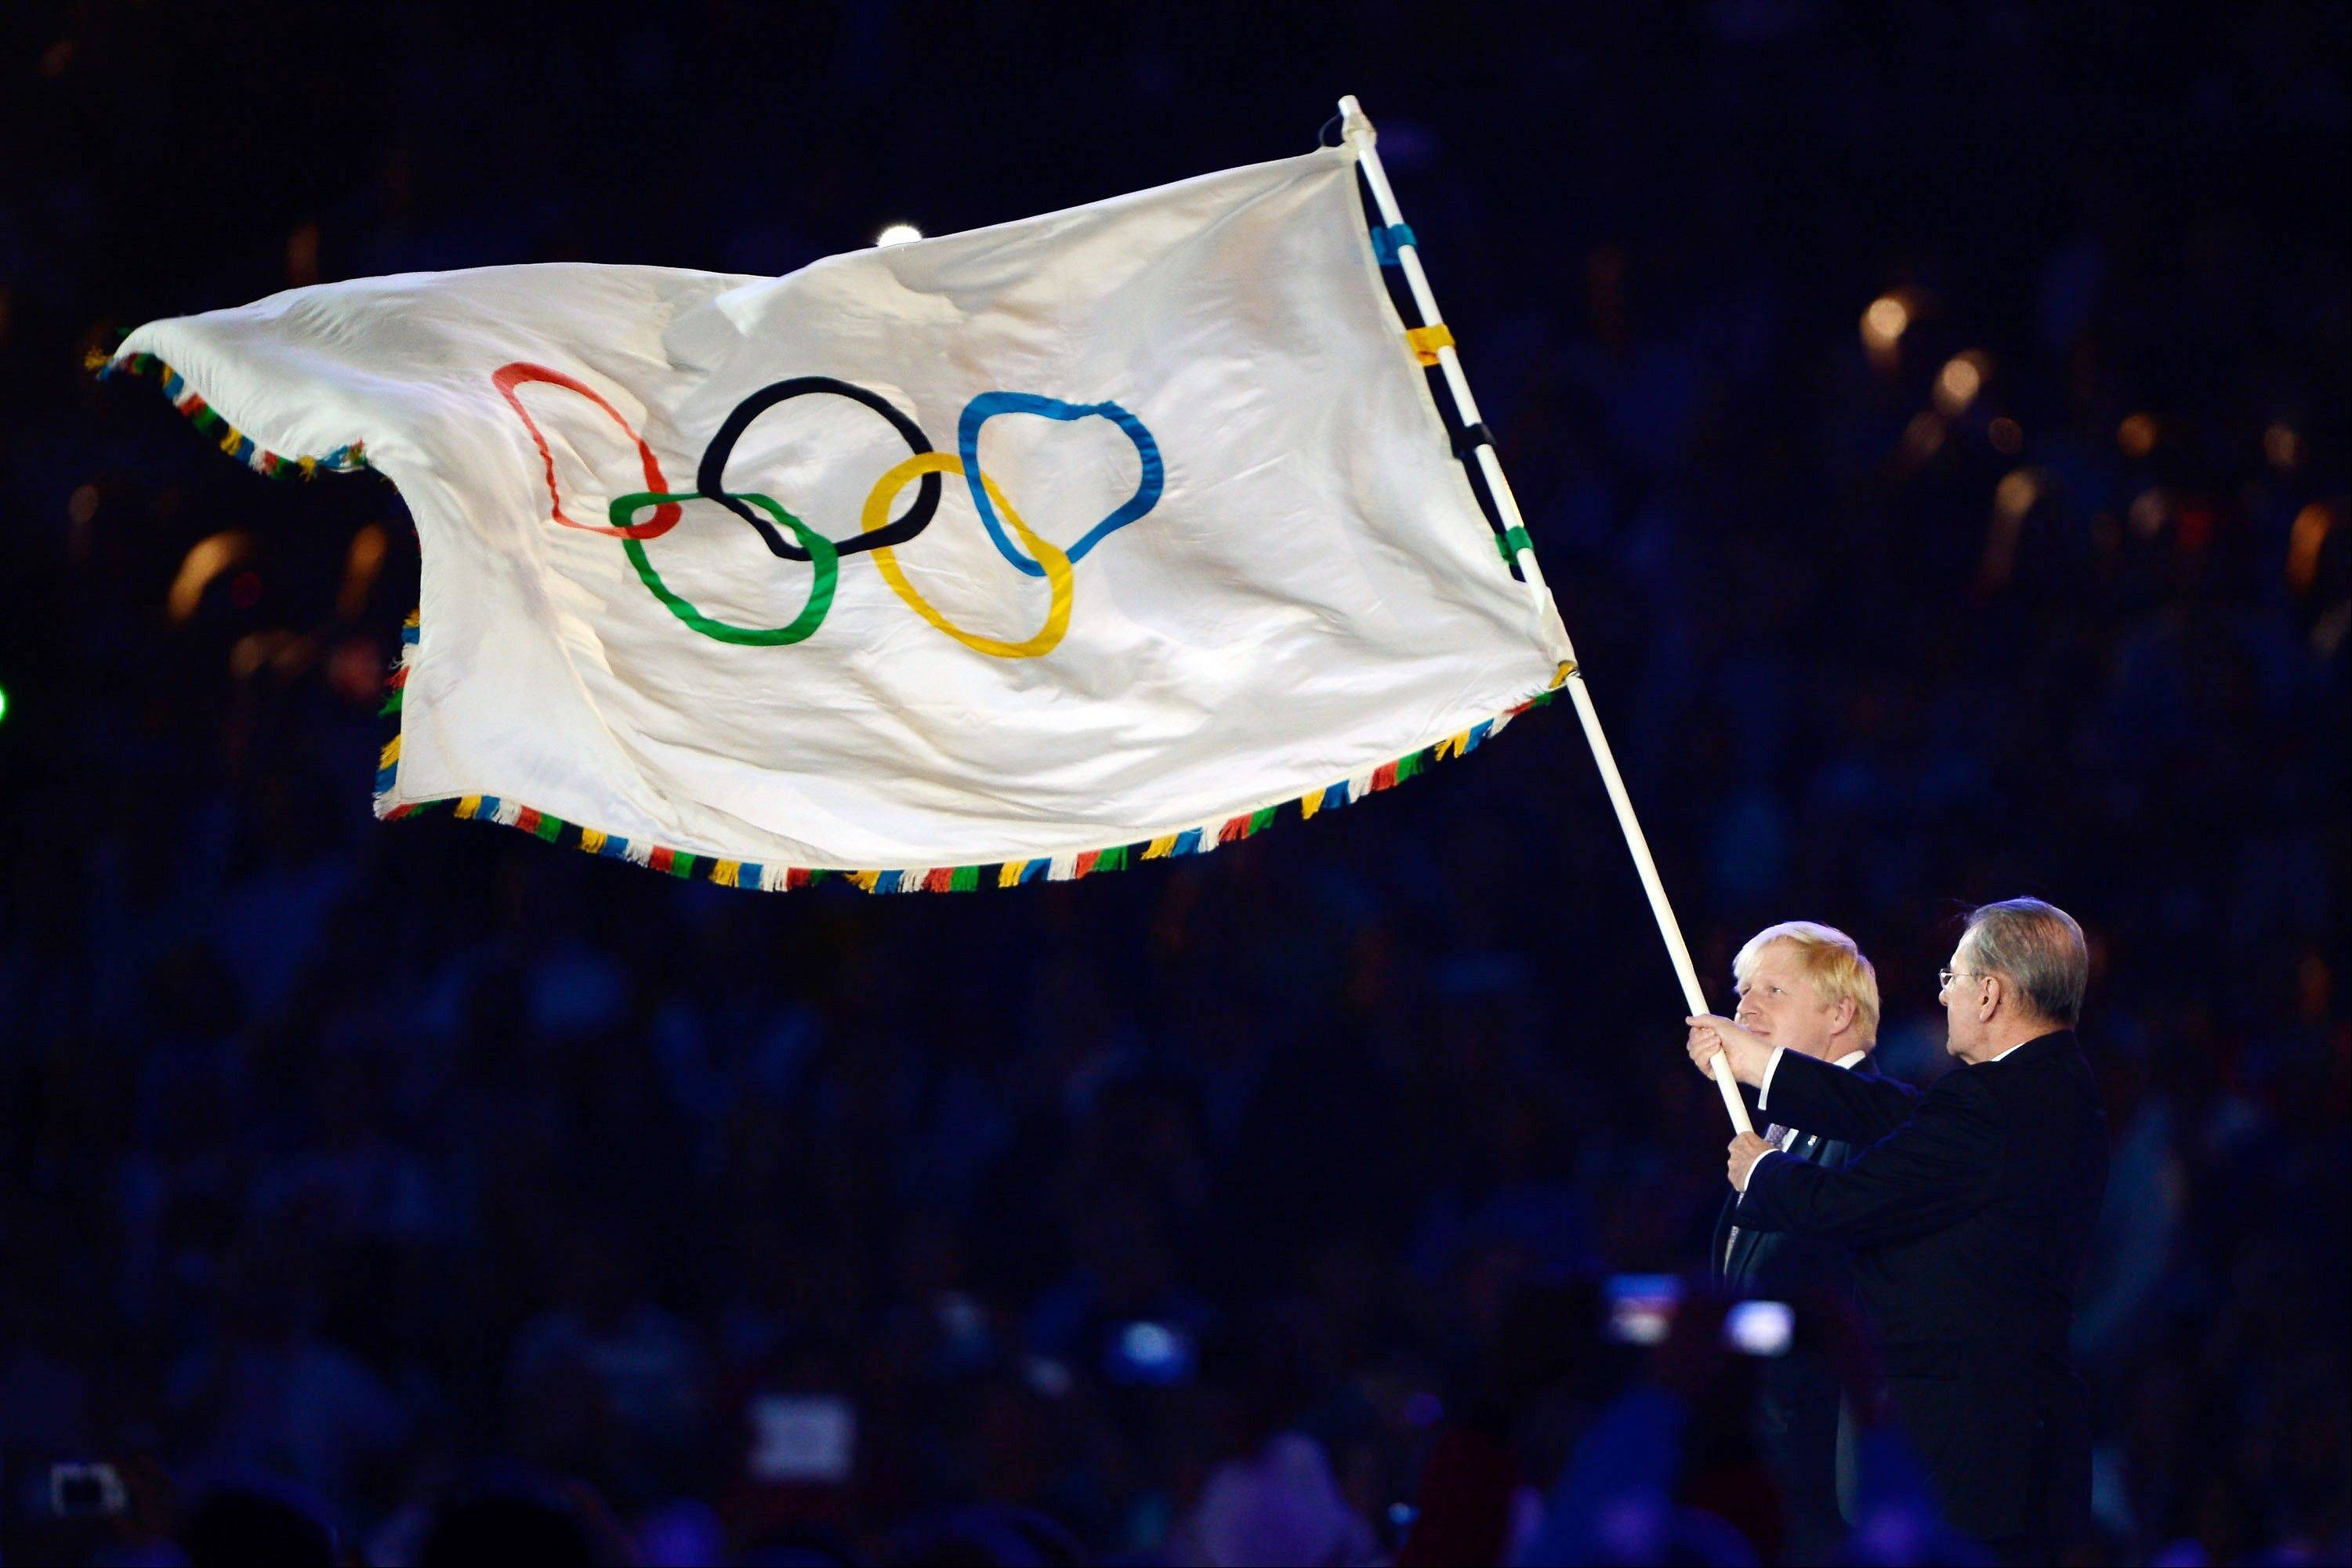 The Olympic flag is handed from London Mayor Boris Johnson, left, to the International Olympic Committee President Jacques Rogge during the closing ceremony of the 2012 Summer Olympics on Sunday in London.